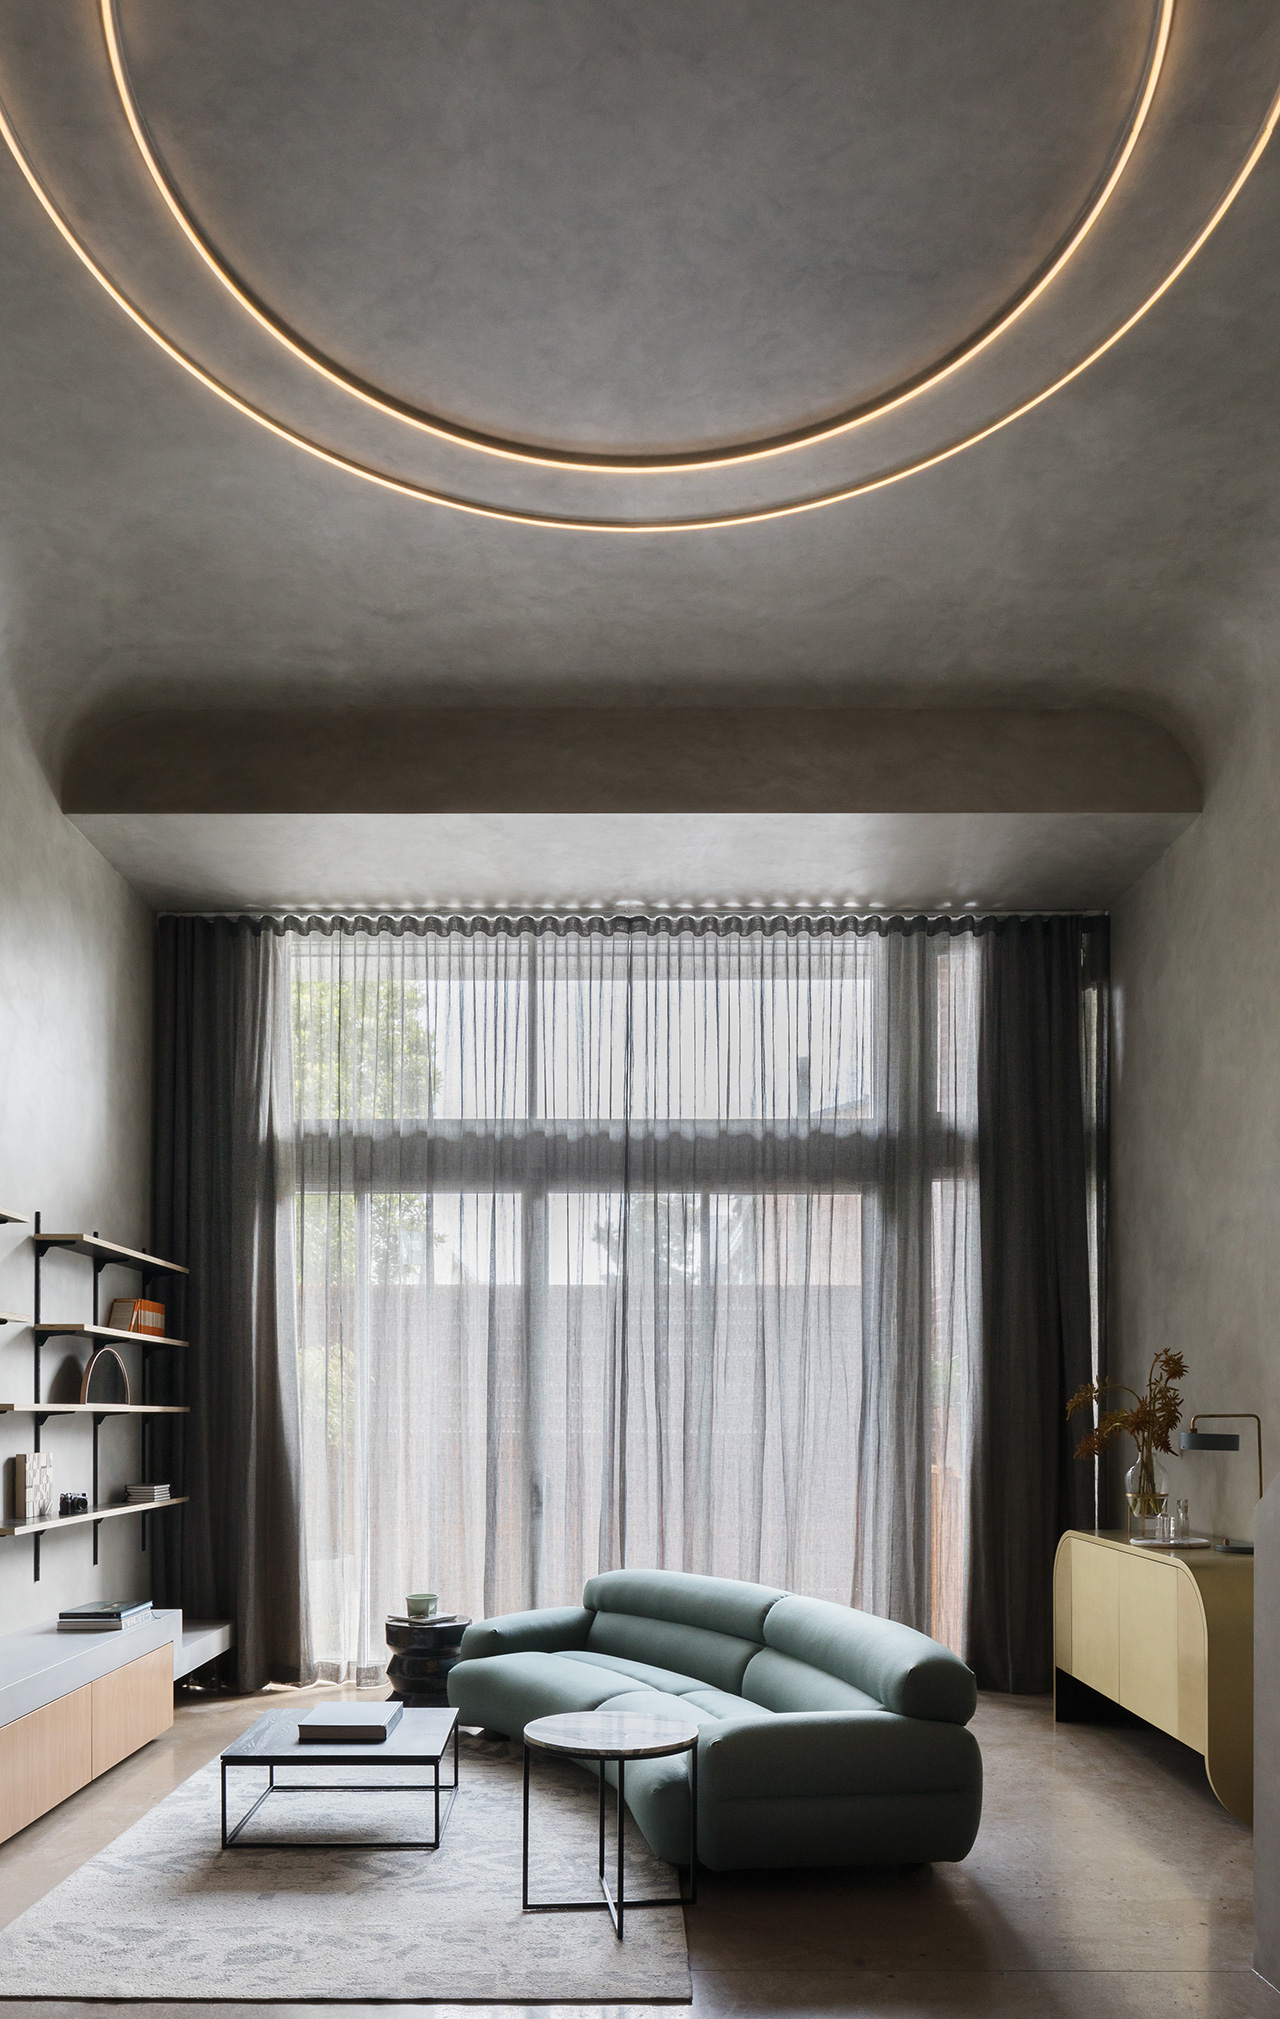 Full-height windows draw in natural light